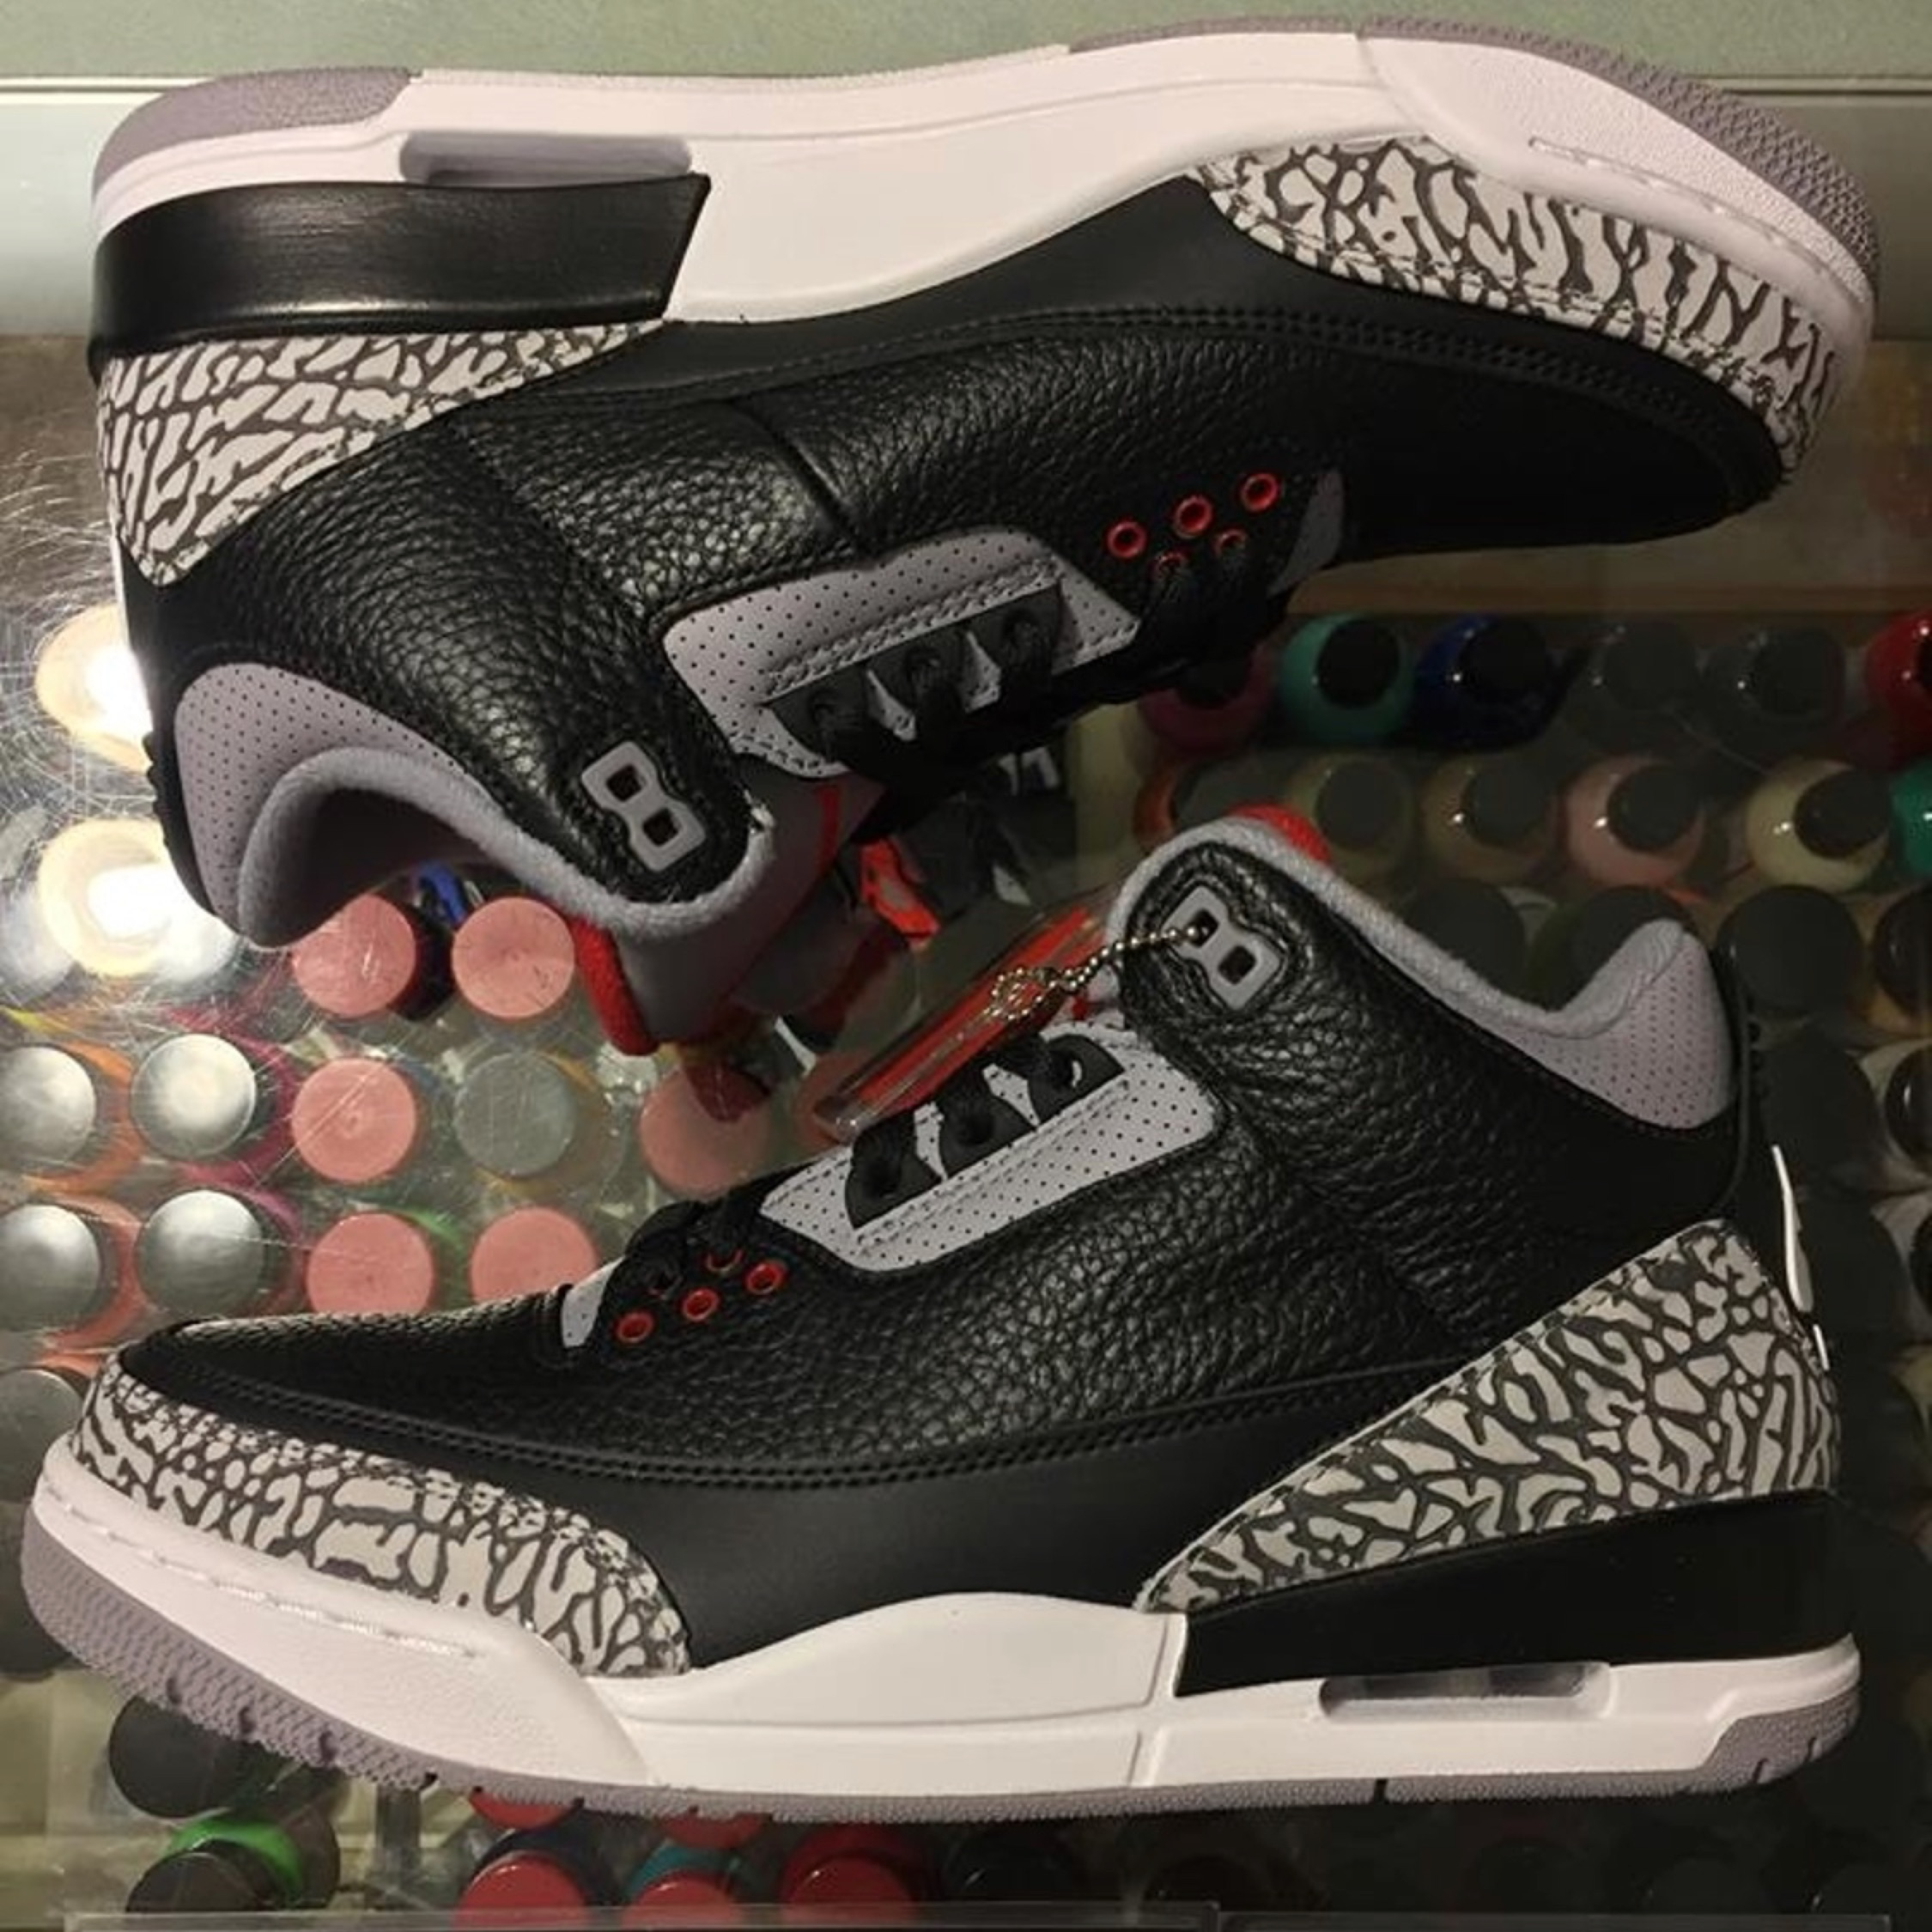 info for ea7f5 42d01 Nike Jordan Black Cement 3 Size 7 Sneakers